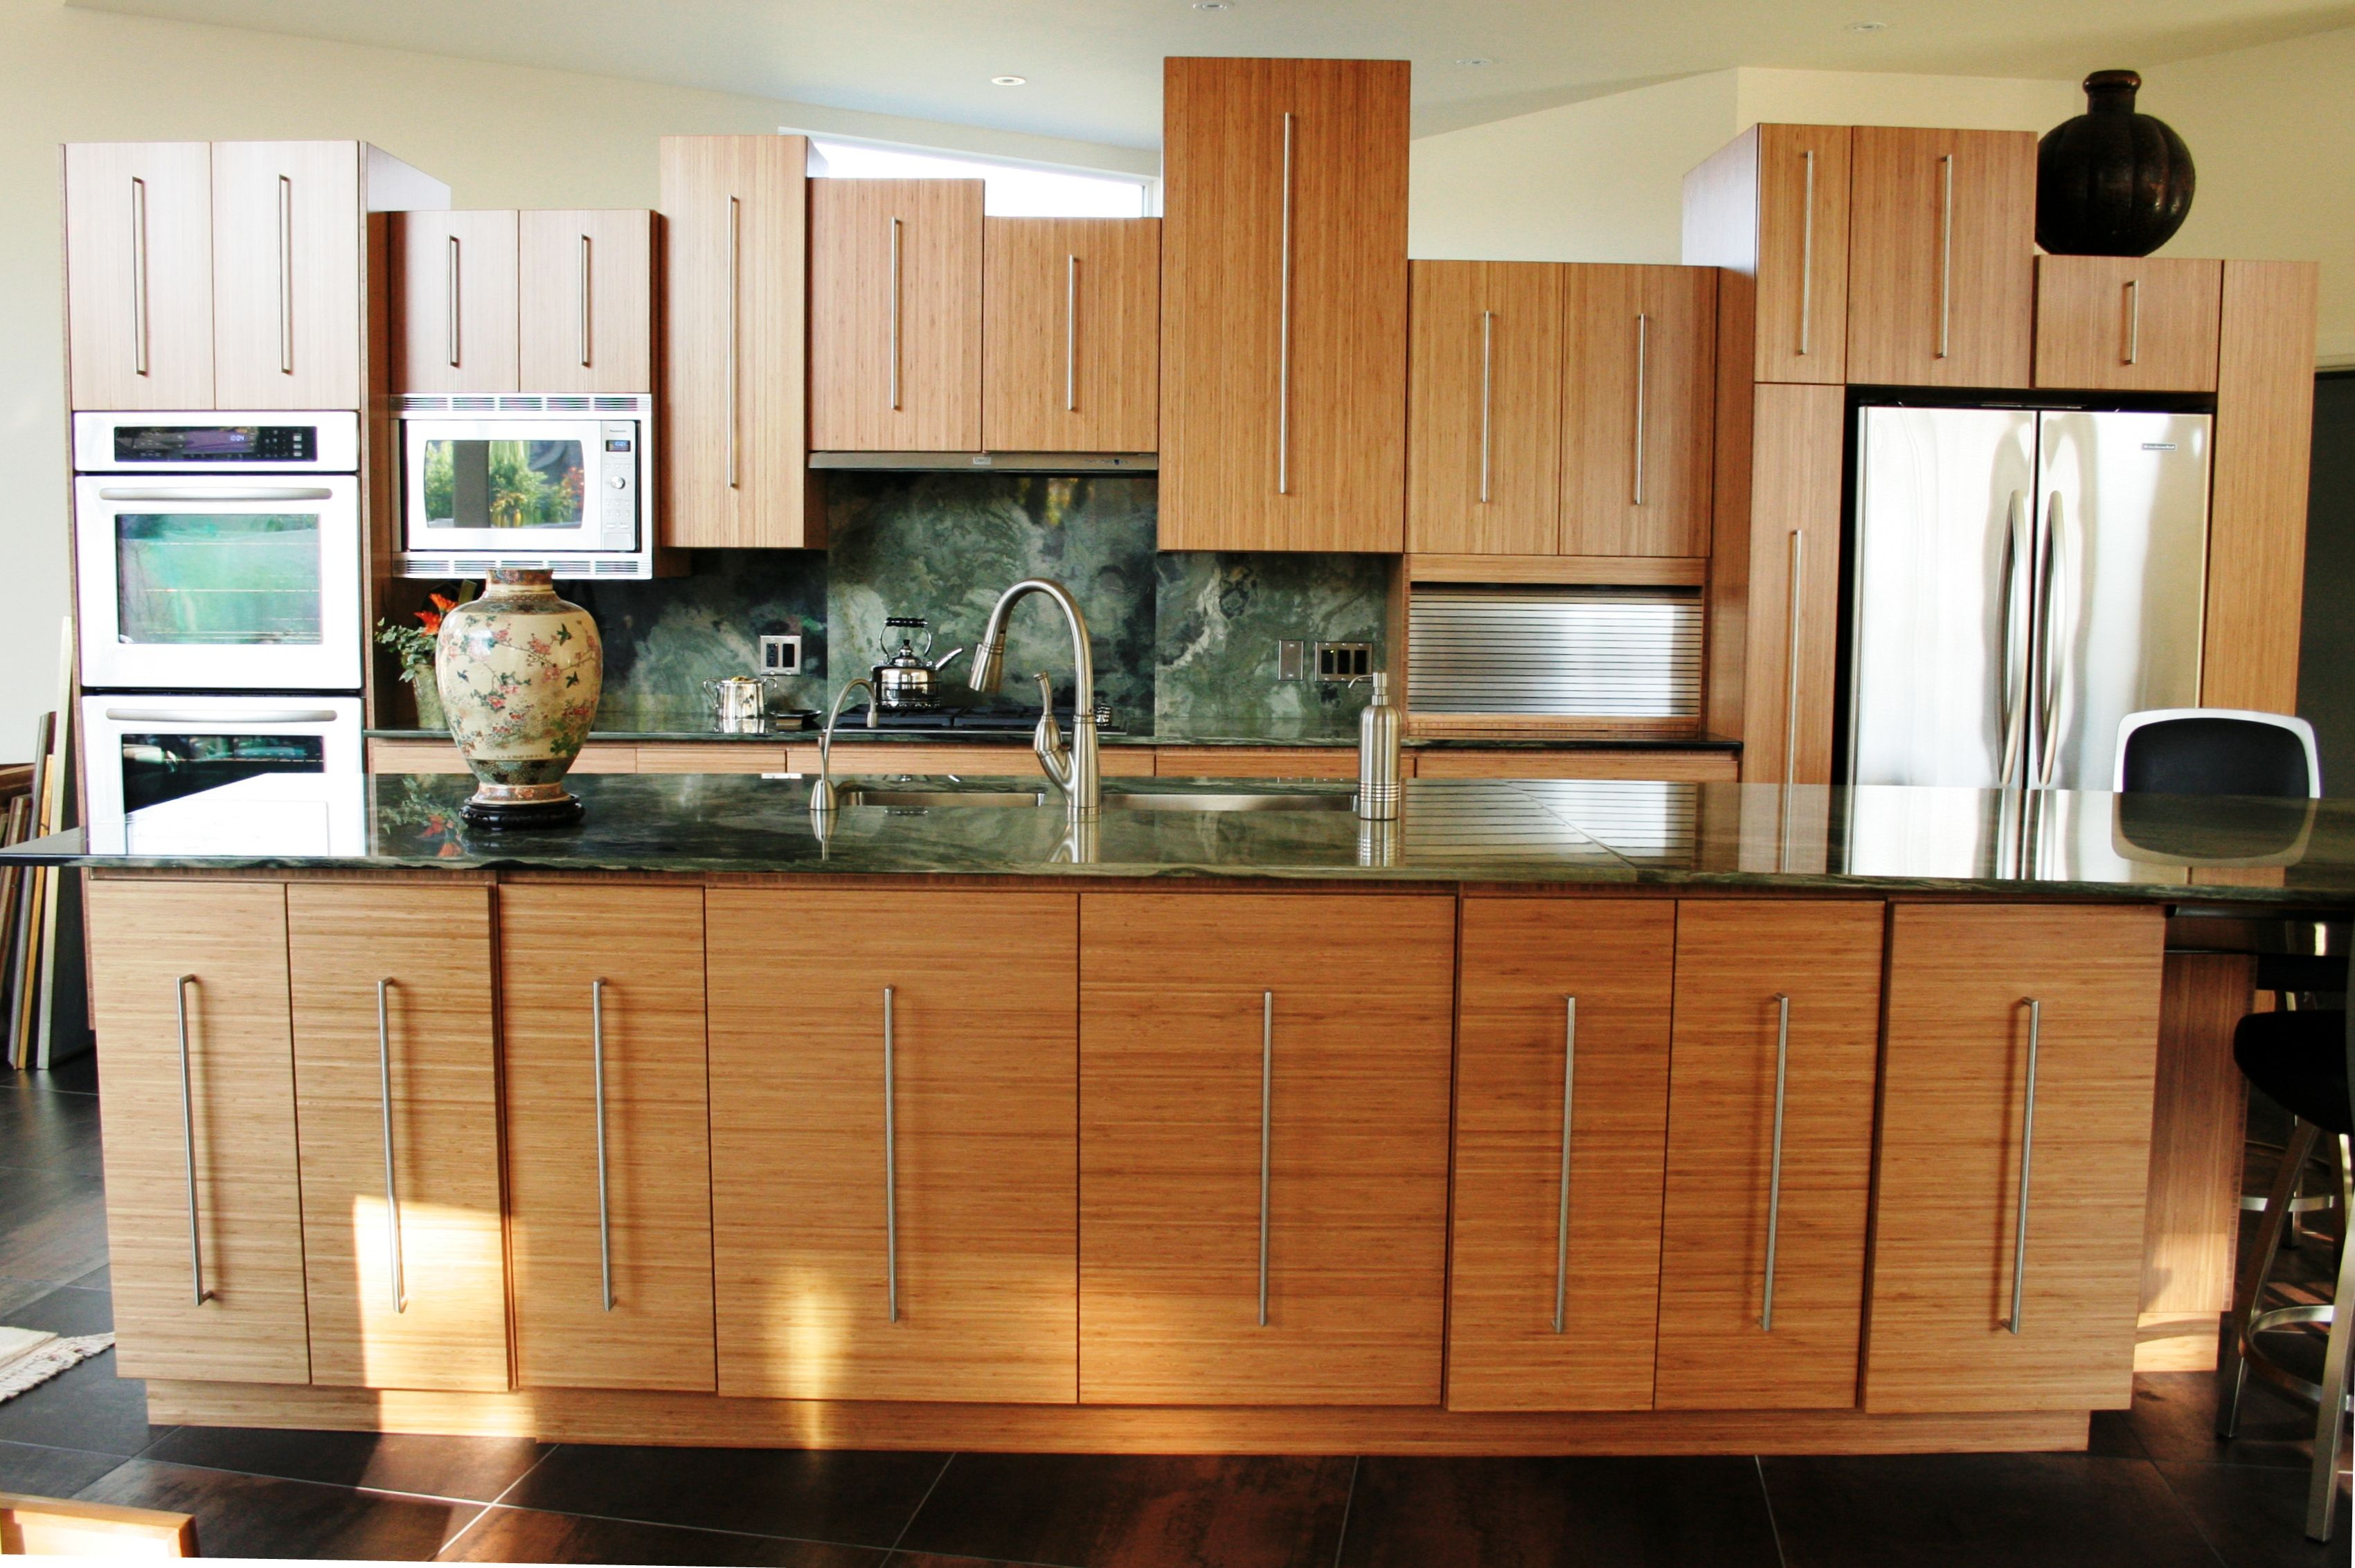 The home owner of this solid Bamboo kitchen wanted the doors to be all different sizes and different depths. A cool take on the modern kitchen.